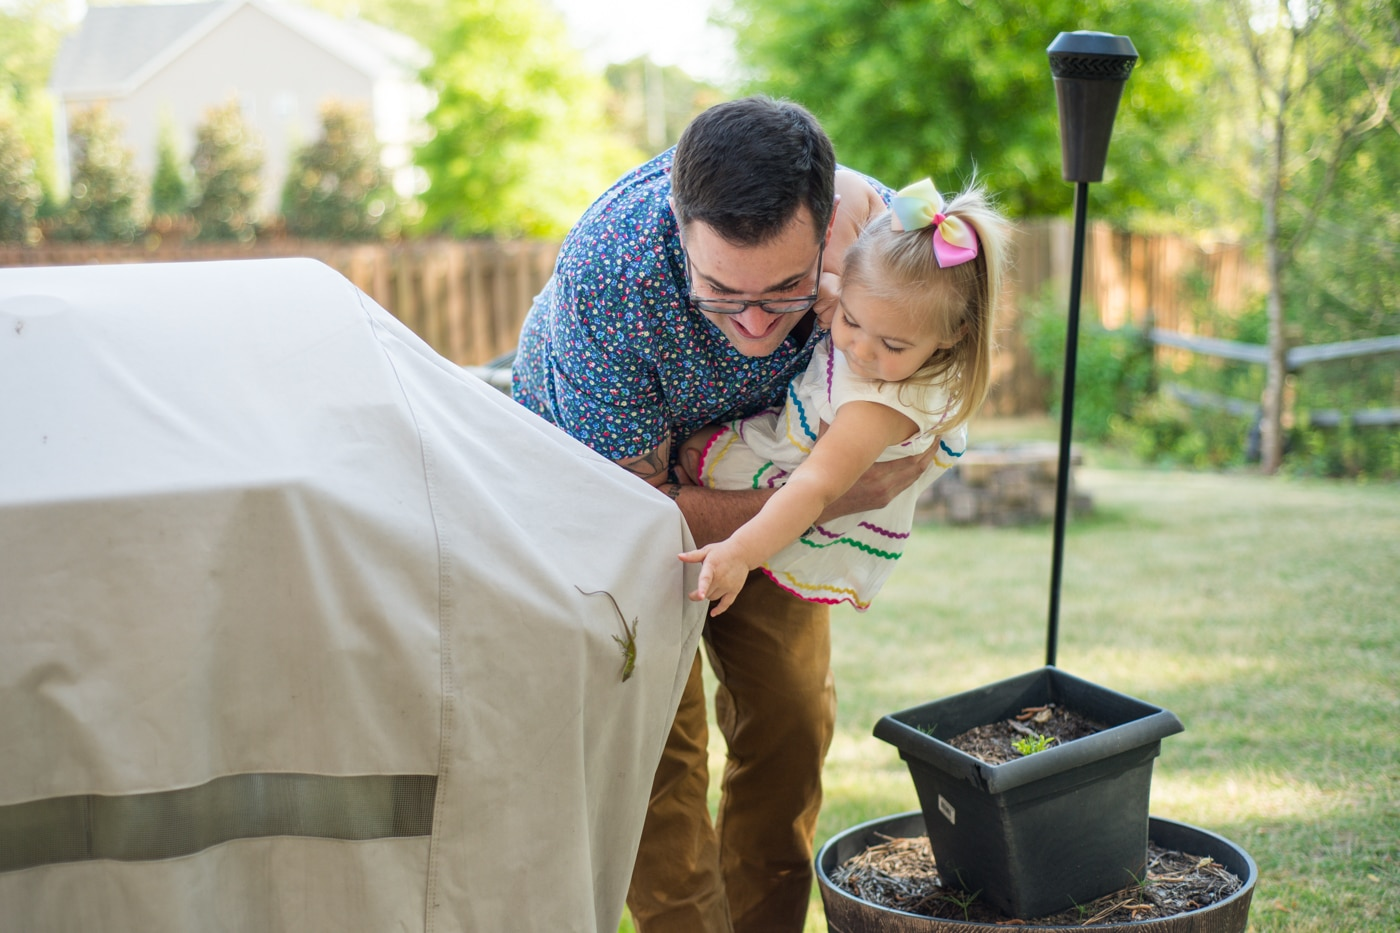 Father showing his toddler a lizard in their backyard in Atlanta family portraits Raven Shutley